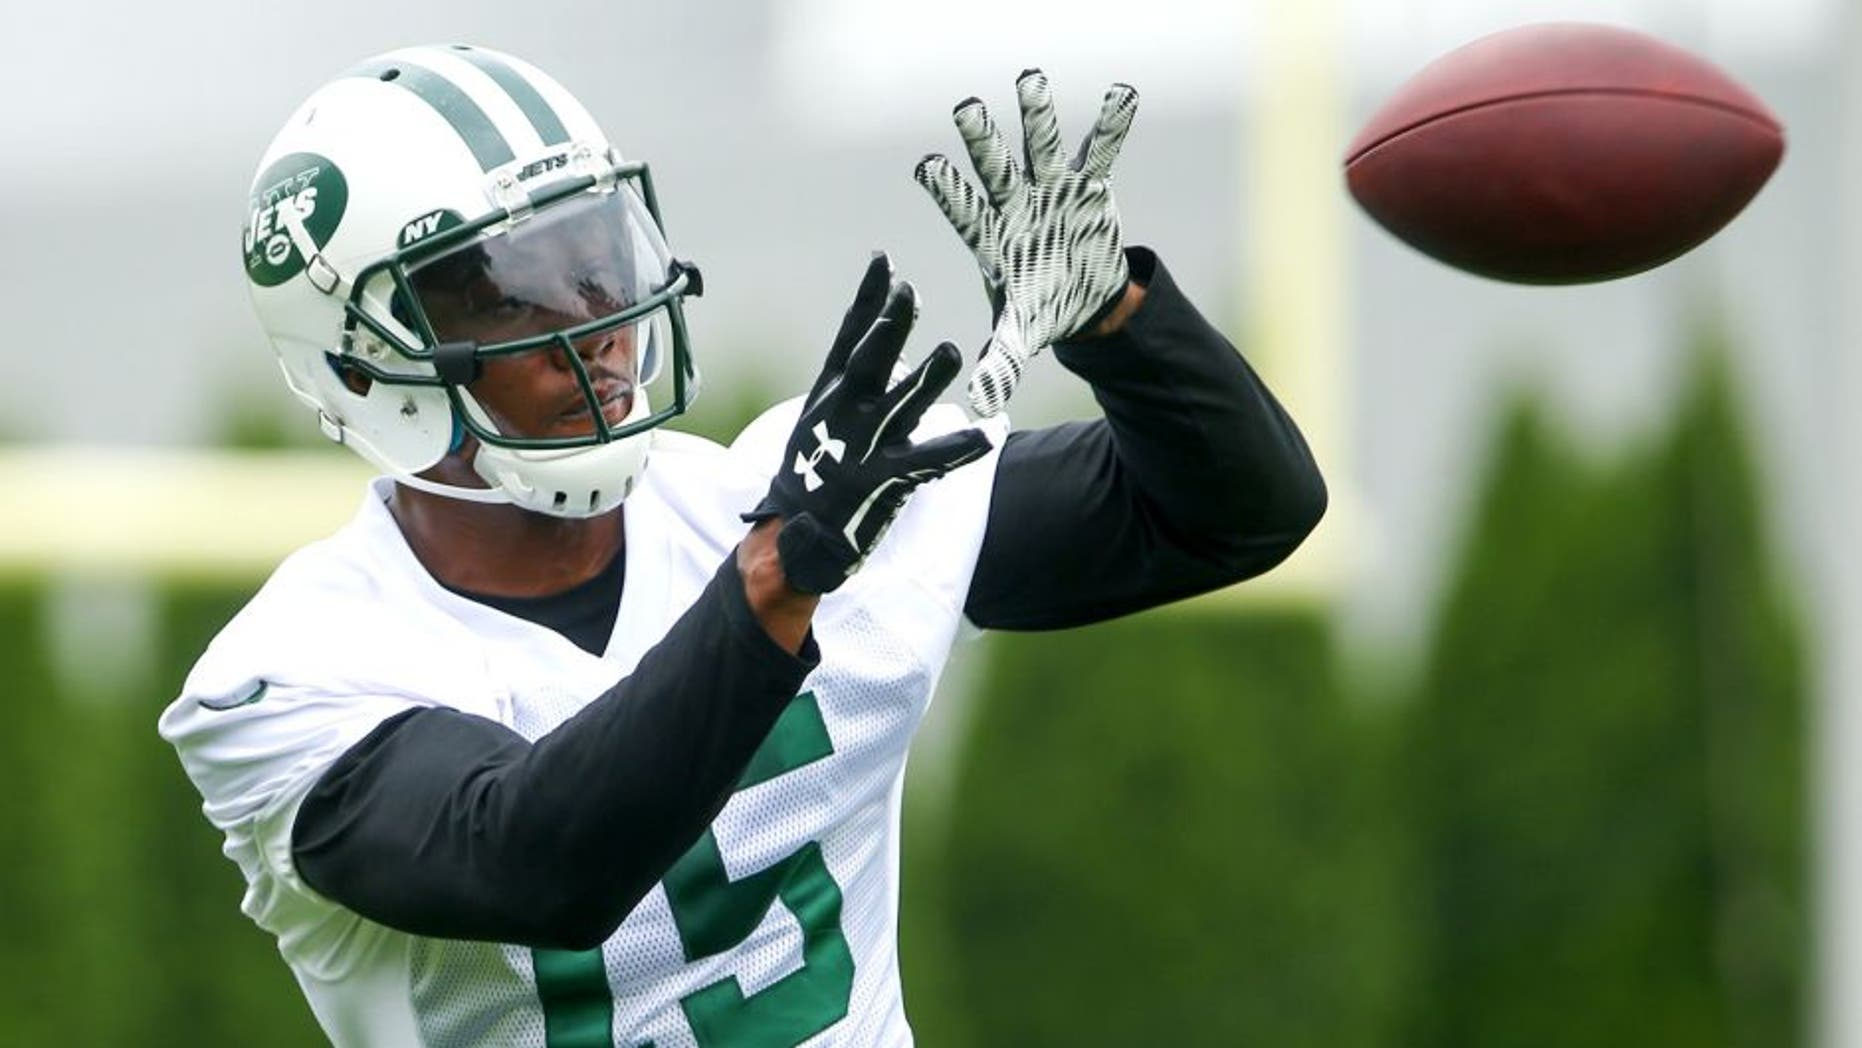 May 27, 2015; East Rutherford, NJ, USA; New York Jets wide receiver Brandon Marshall (15) catches a pass during organized team activities at Atlantic Health Jets Training Center. Mandatory Credit: Ed Mulholland-USA TODAY Sports